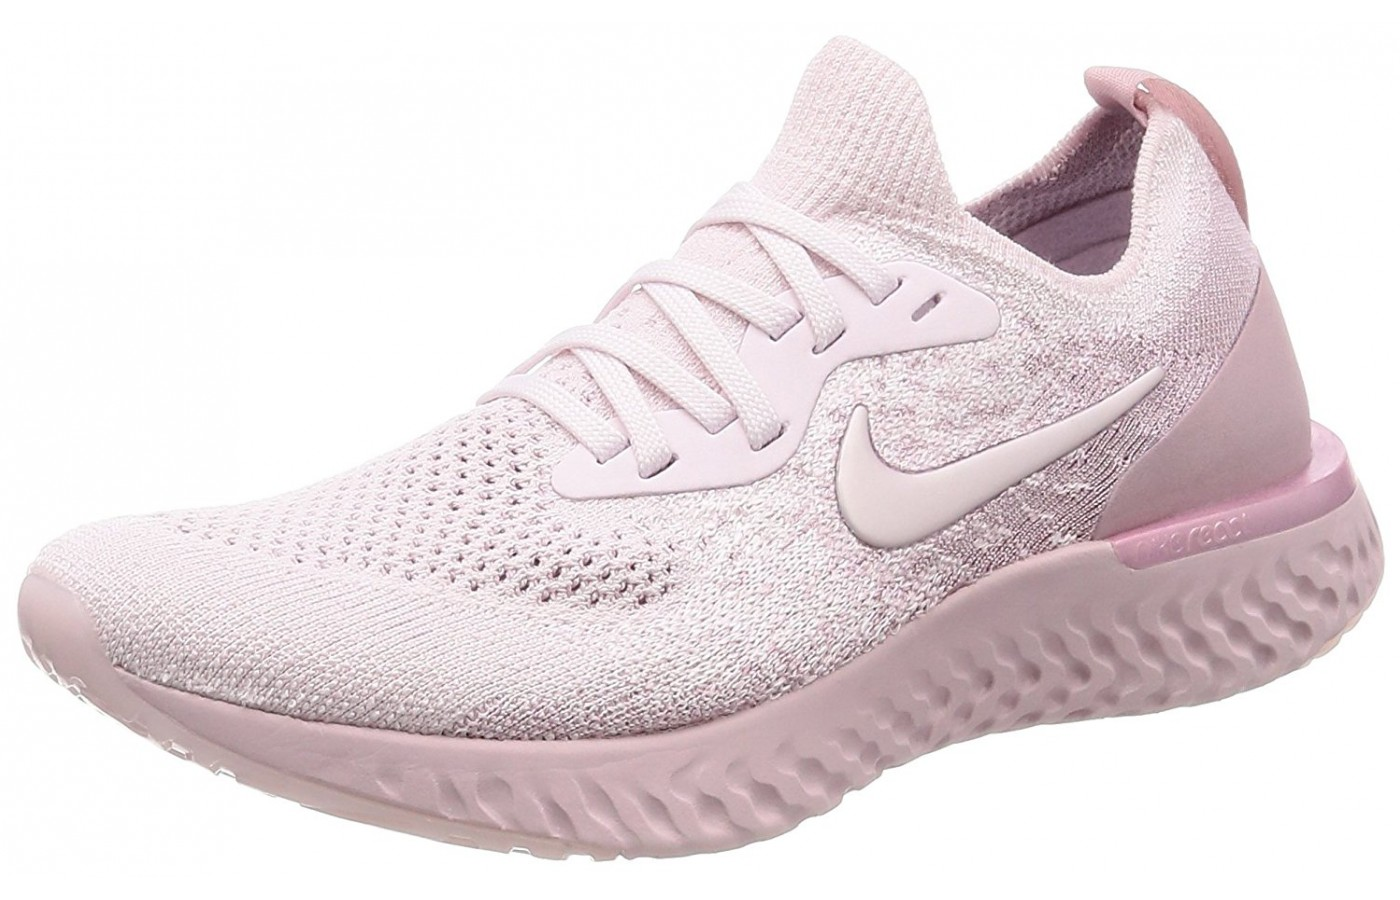 93a116135 Nike Epic React Flyknit Tested for Performance in 2019 | WalkJogRun